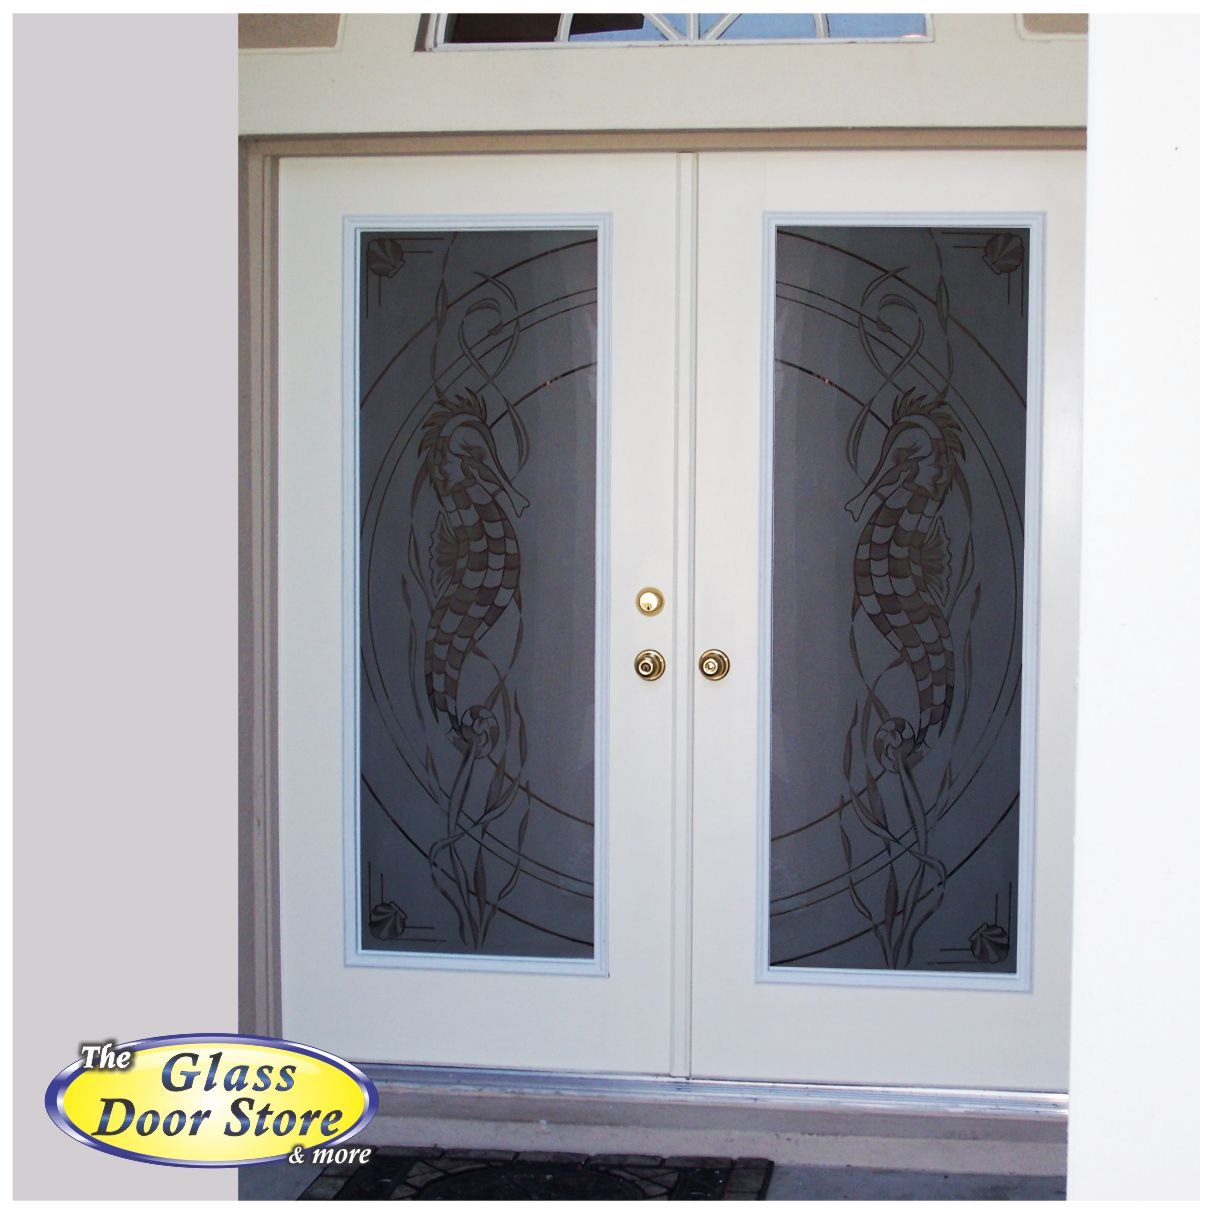 Etched Glass Front Entry Doors With Aquatic Themes